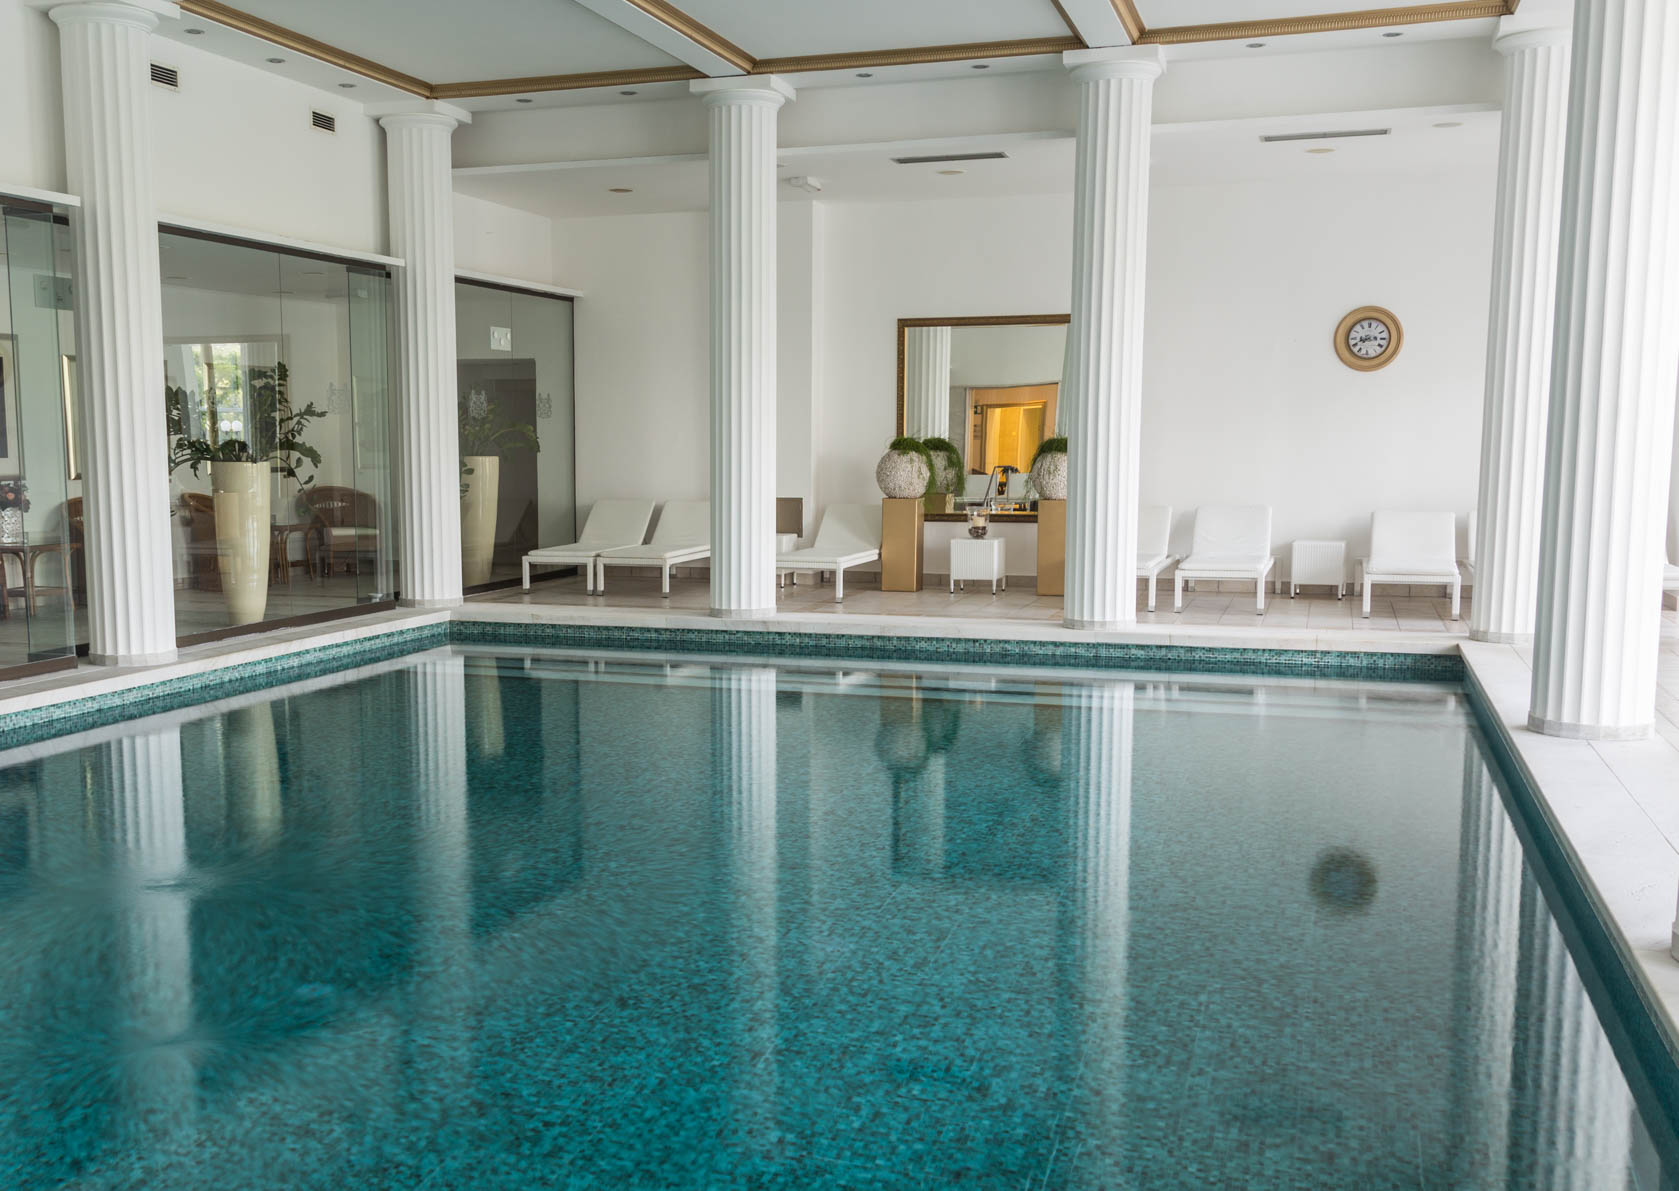 Pool at Grand Hotel Toplice, Bled